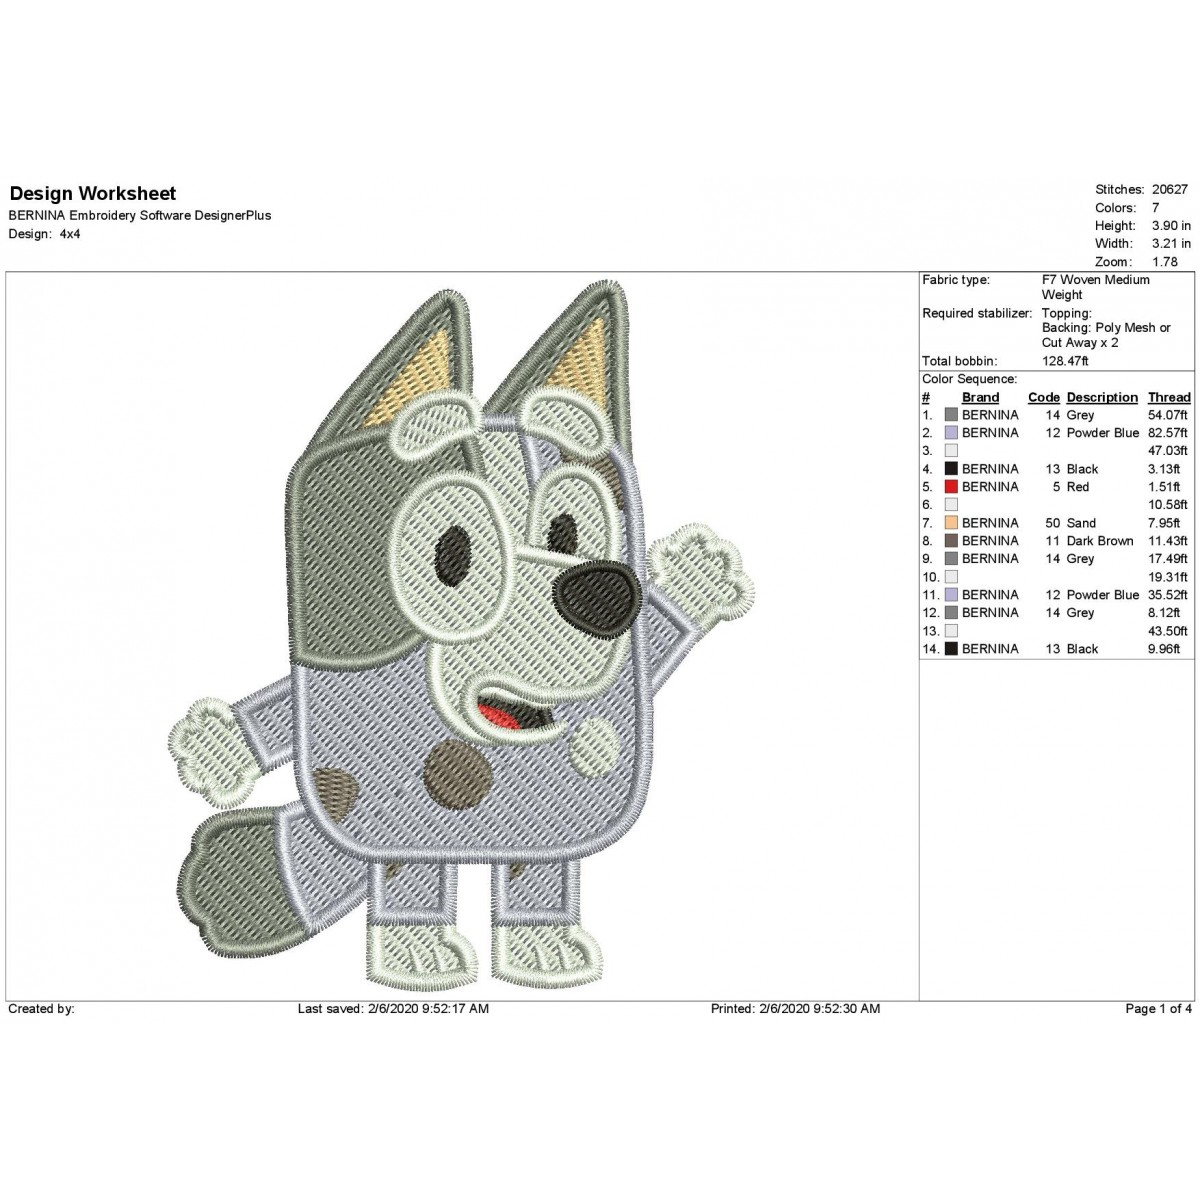 Muffin Bluey the Dog Filled Stitch Embroidery Design